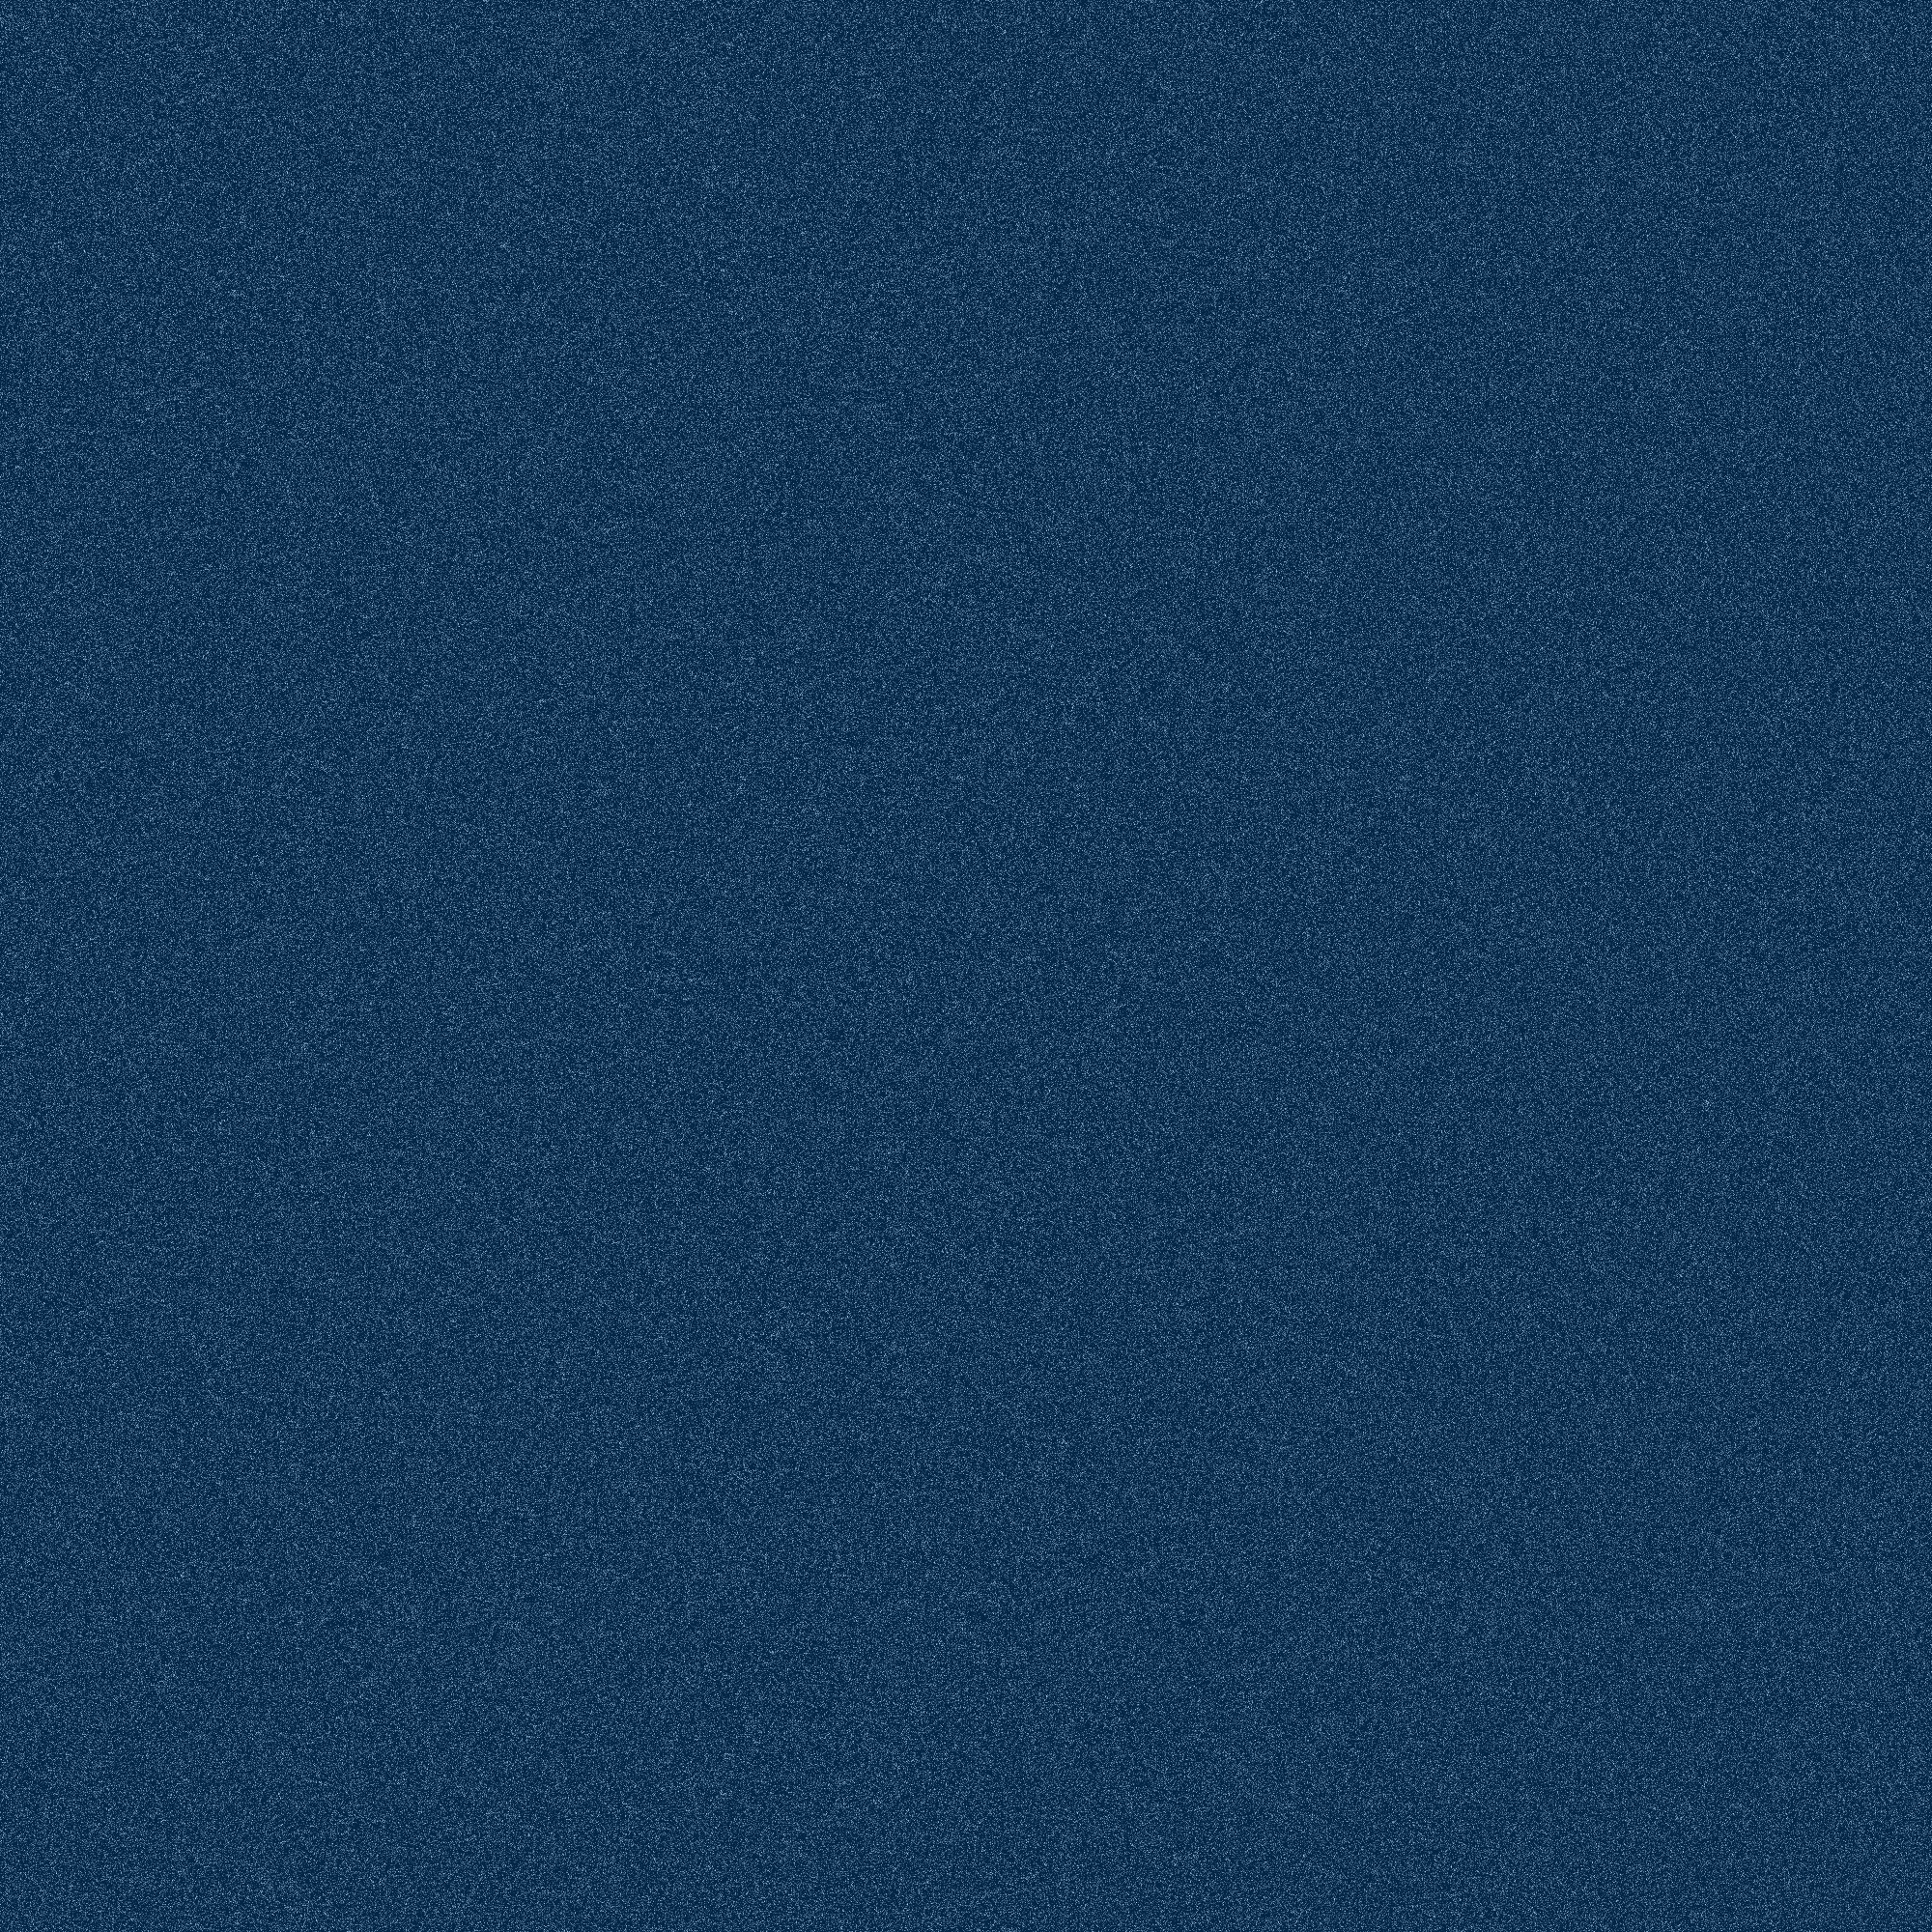 Navy Blue background  Download free amazing full HD